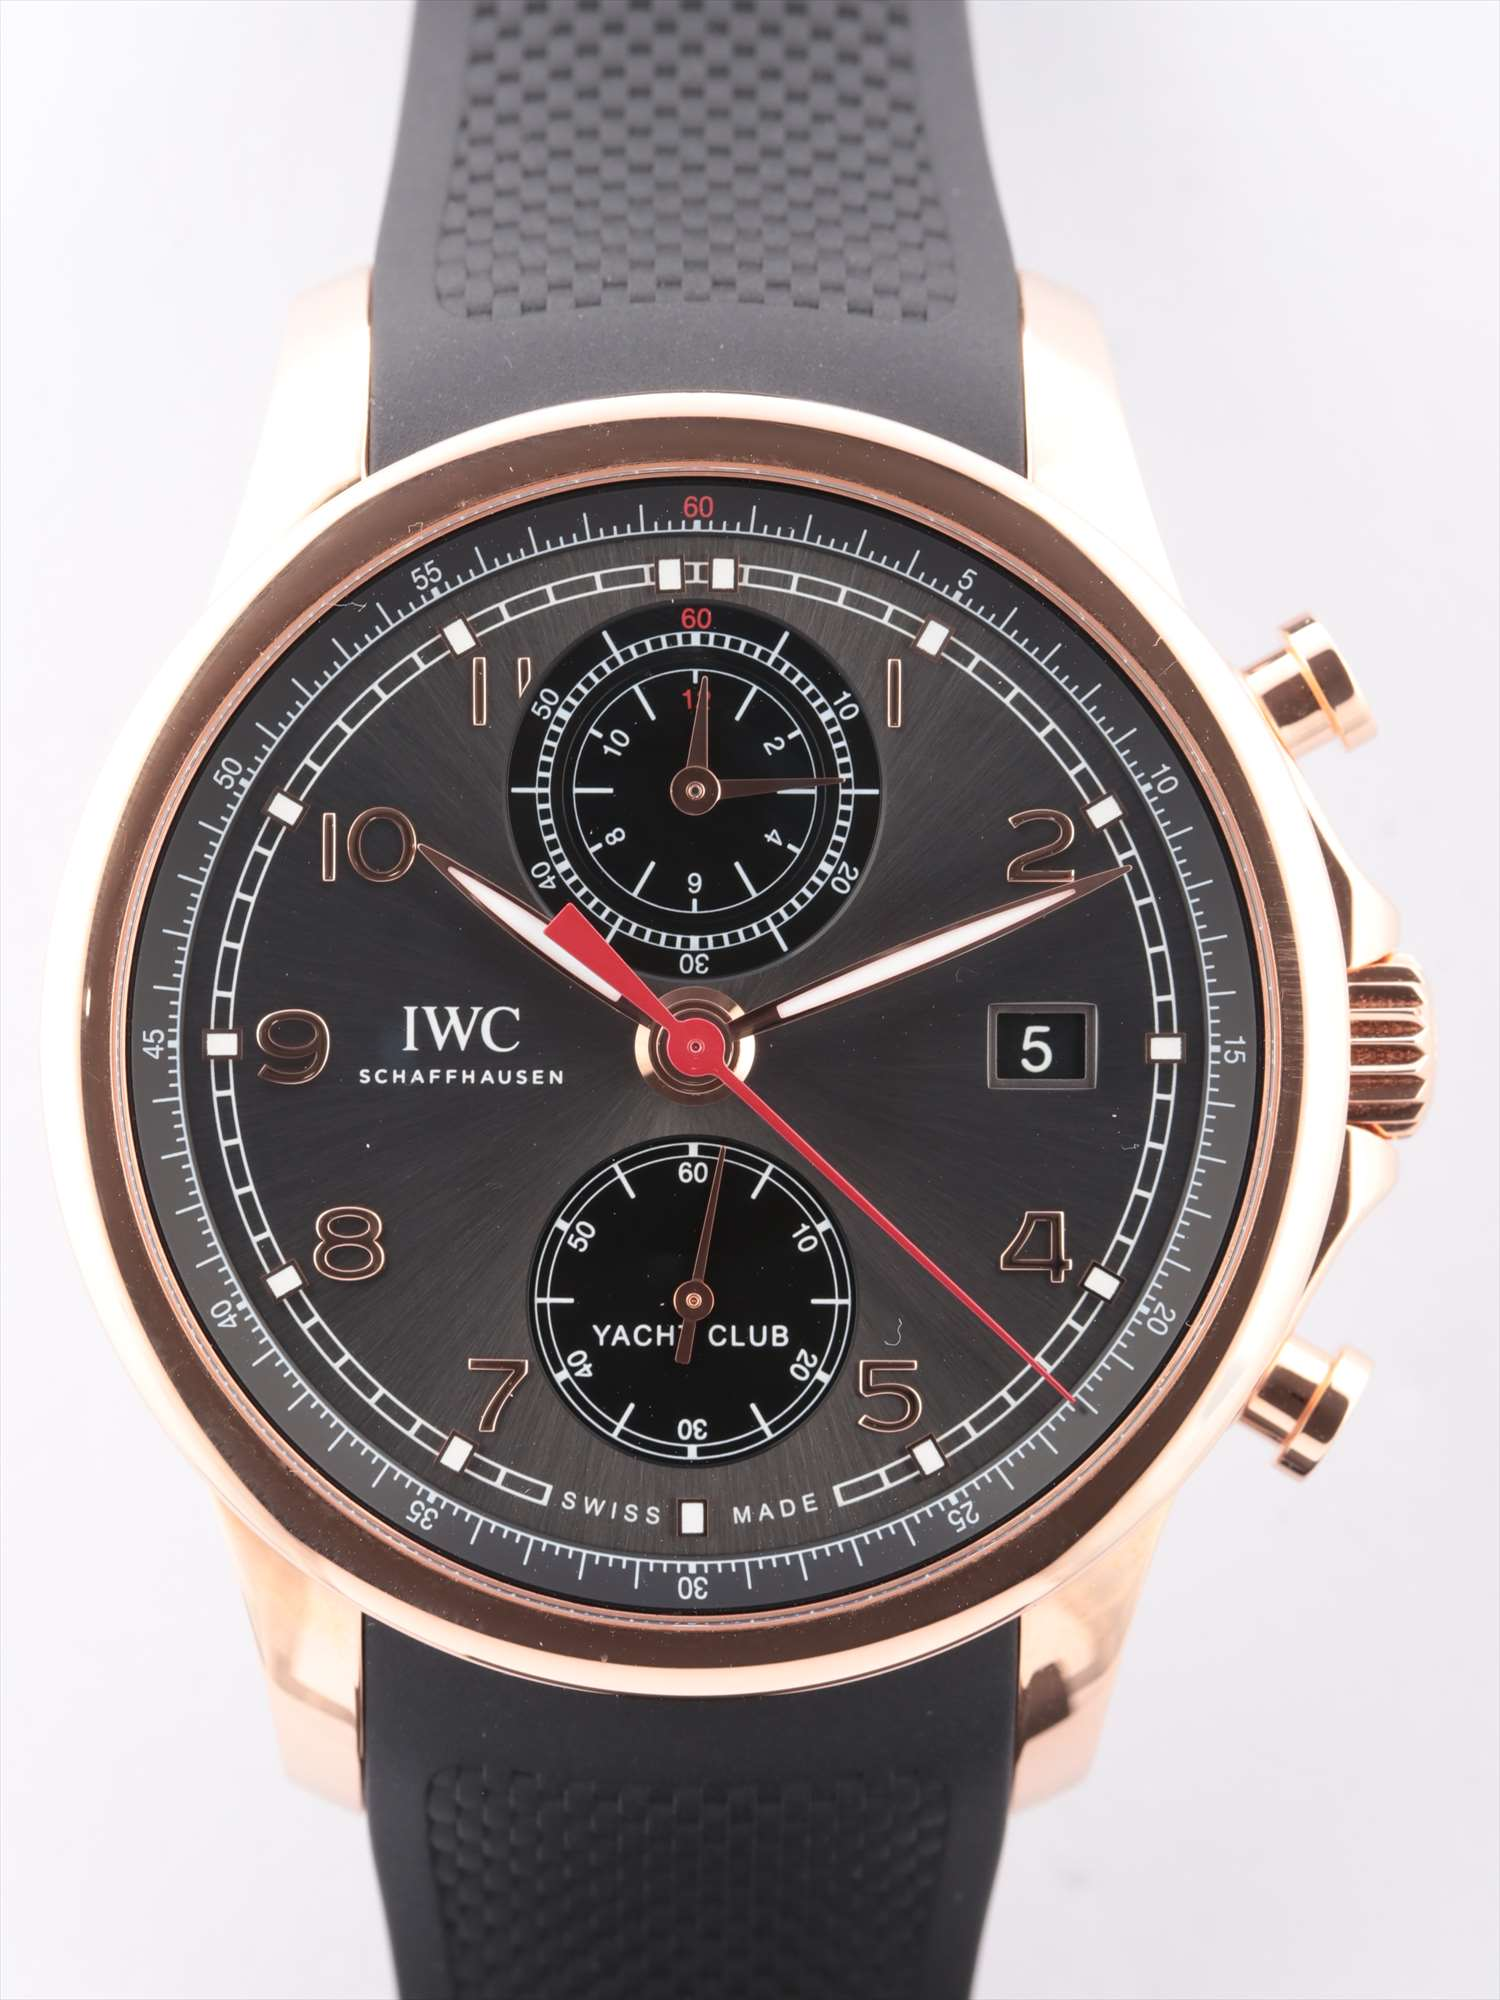 [Used goods] IWC Portuguese Yacht Club PG × rubber AT gray dial too Gomanashi IW390505